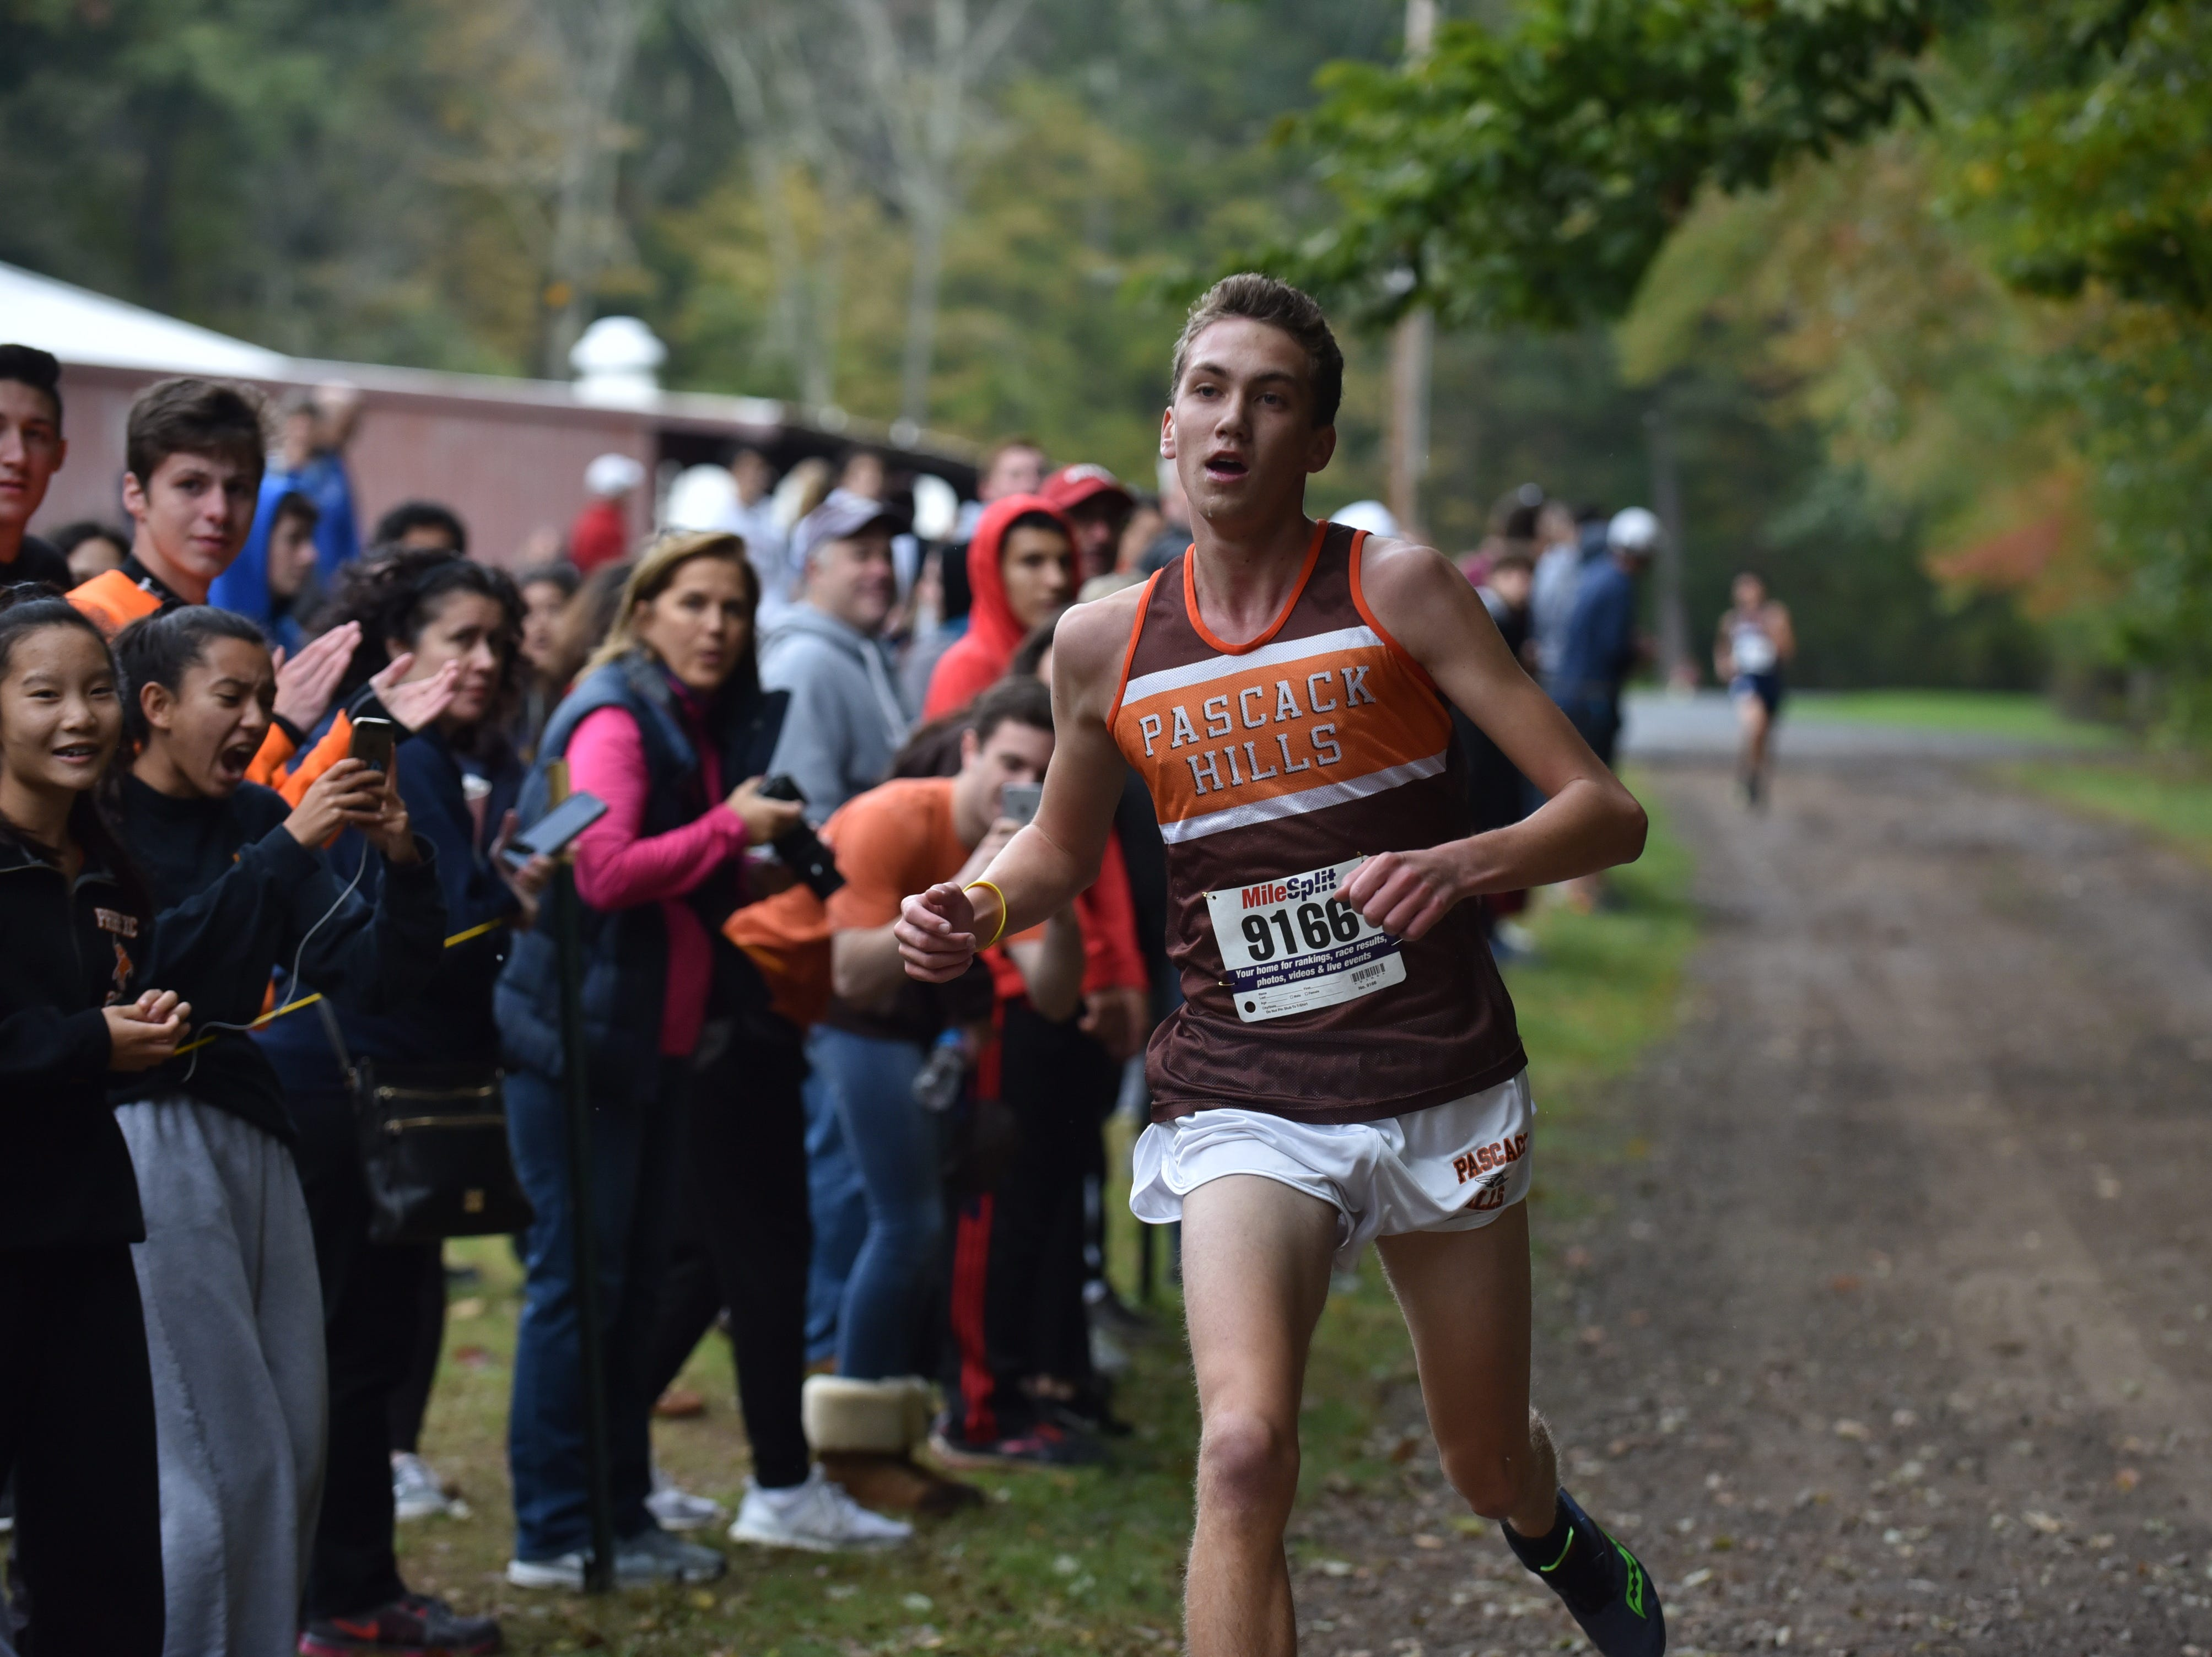 Dillon Jensen of Pascack Hills wins 1st in Group C at the Bergen County Cross Country Championships.